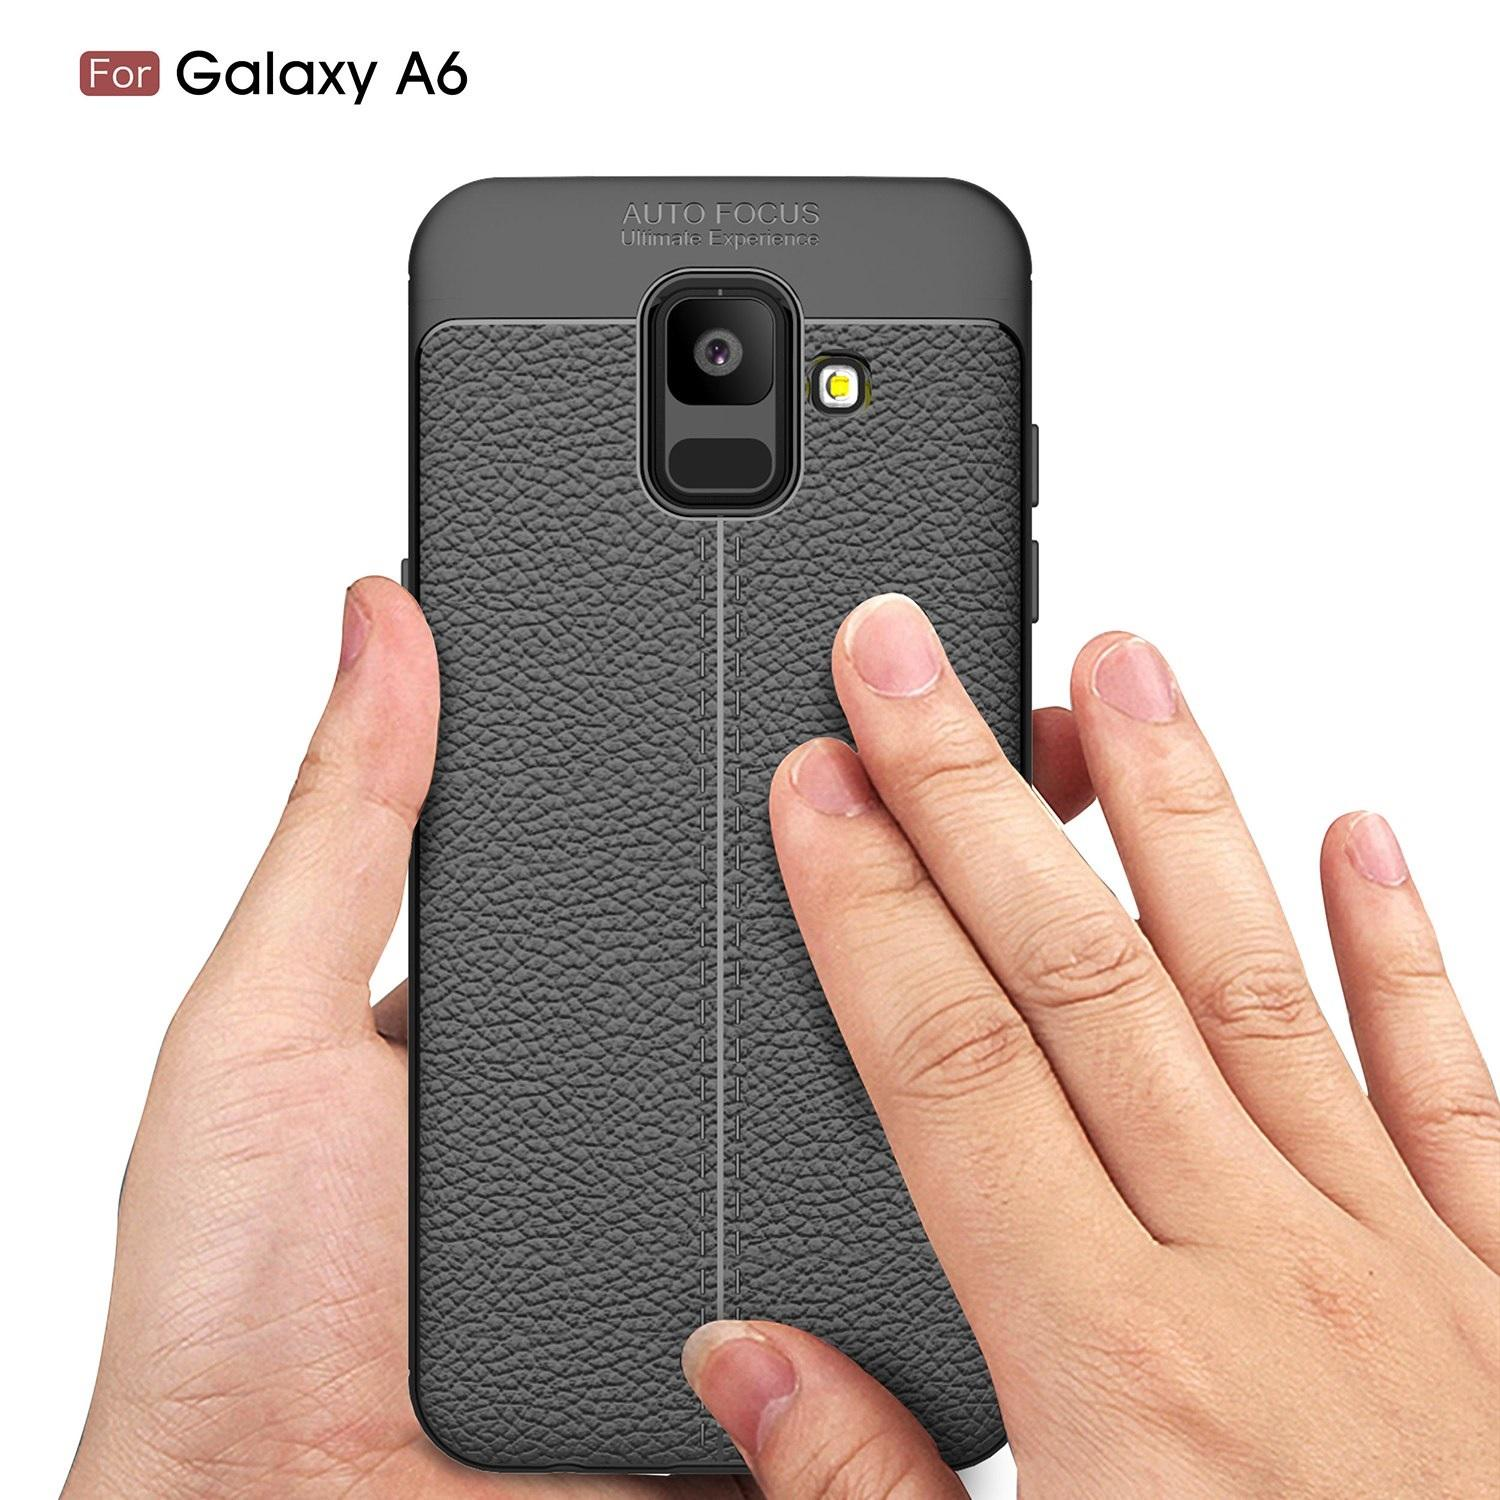 Softcase Auto Focus TPU Case SAMSUNG A6 2018 New Design Case Leather Look - Black